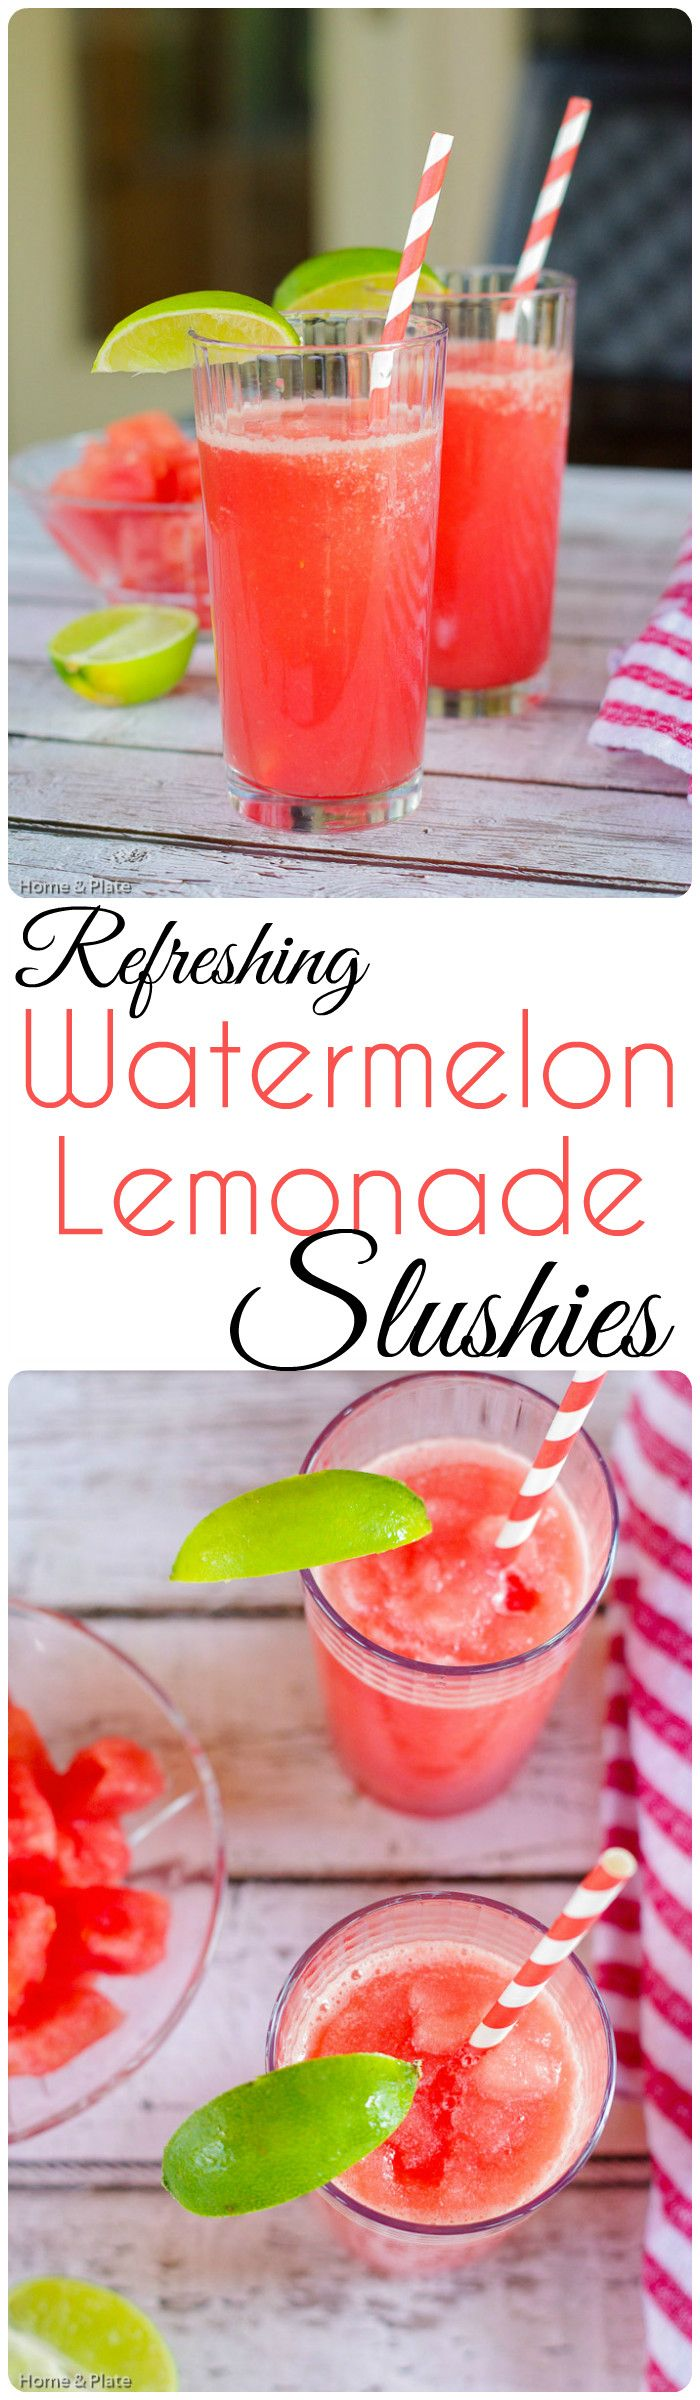 Refreshing Watermelon Lemonade Slushies   Home & Plate   www.homeandplate.com   Watermelon and lemonade are two great ways to stay cool during the dog days of summer.